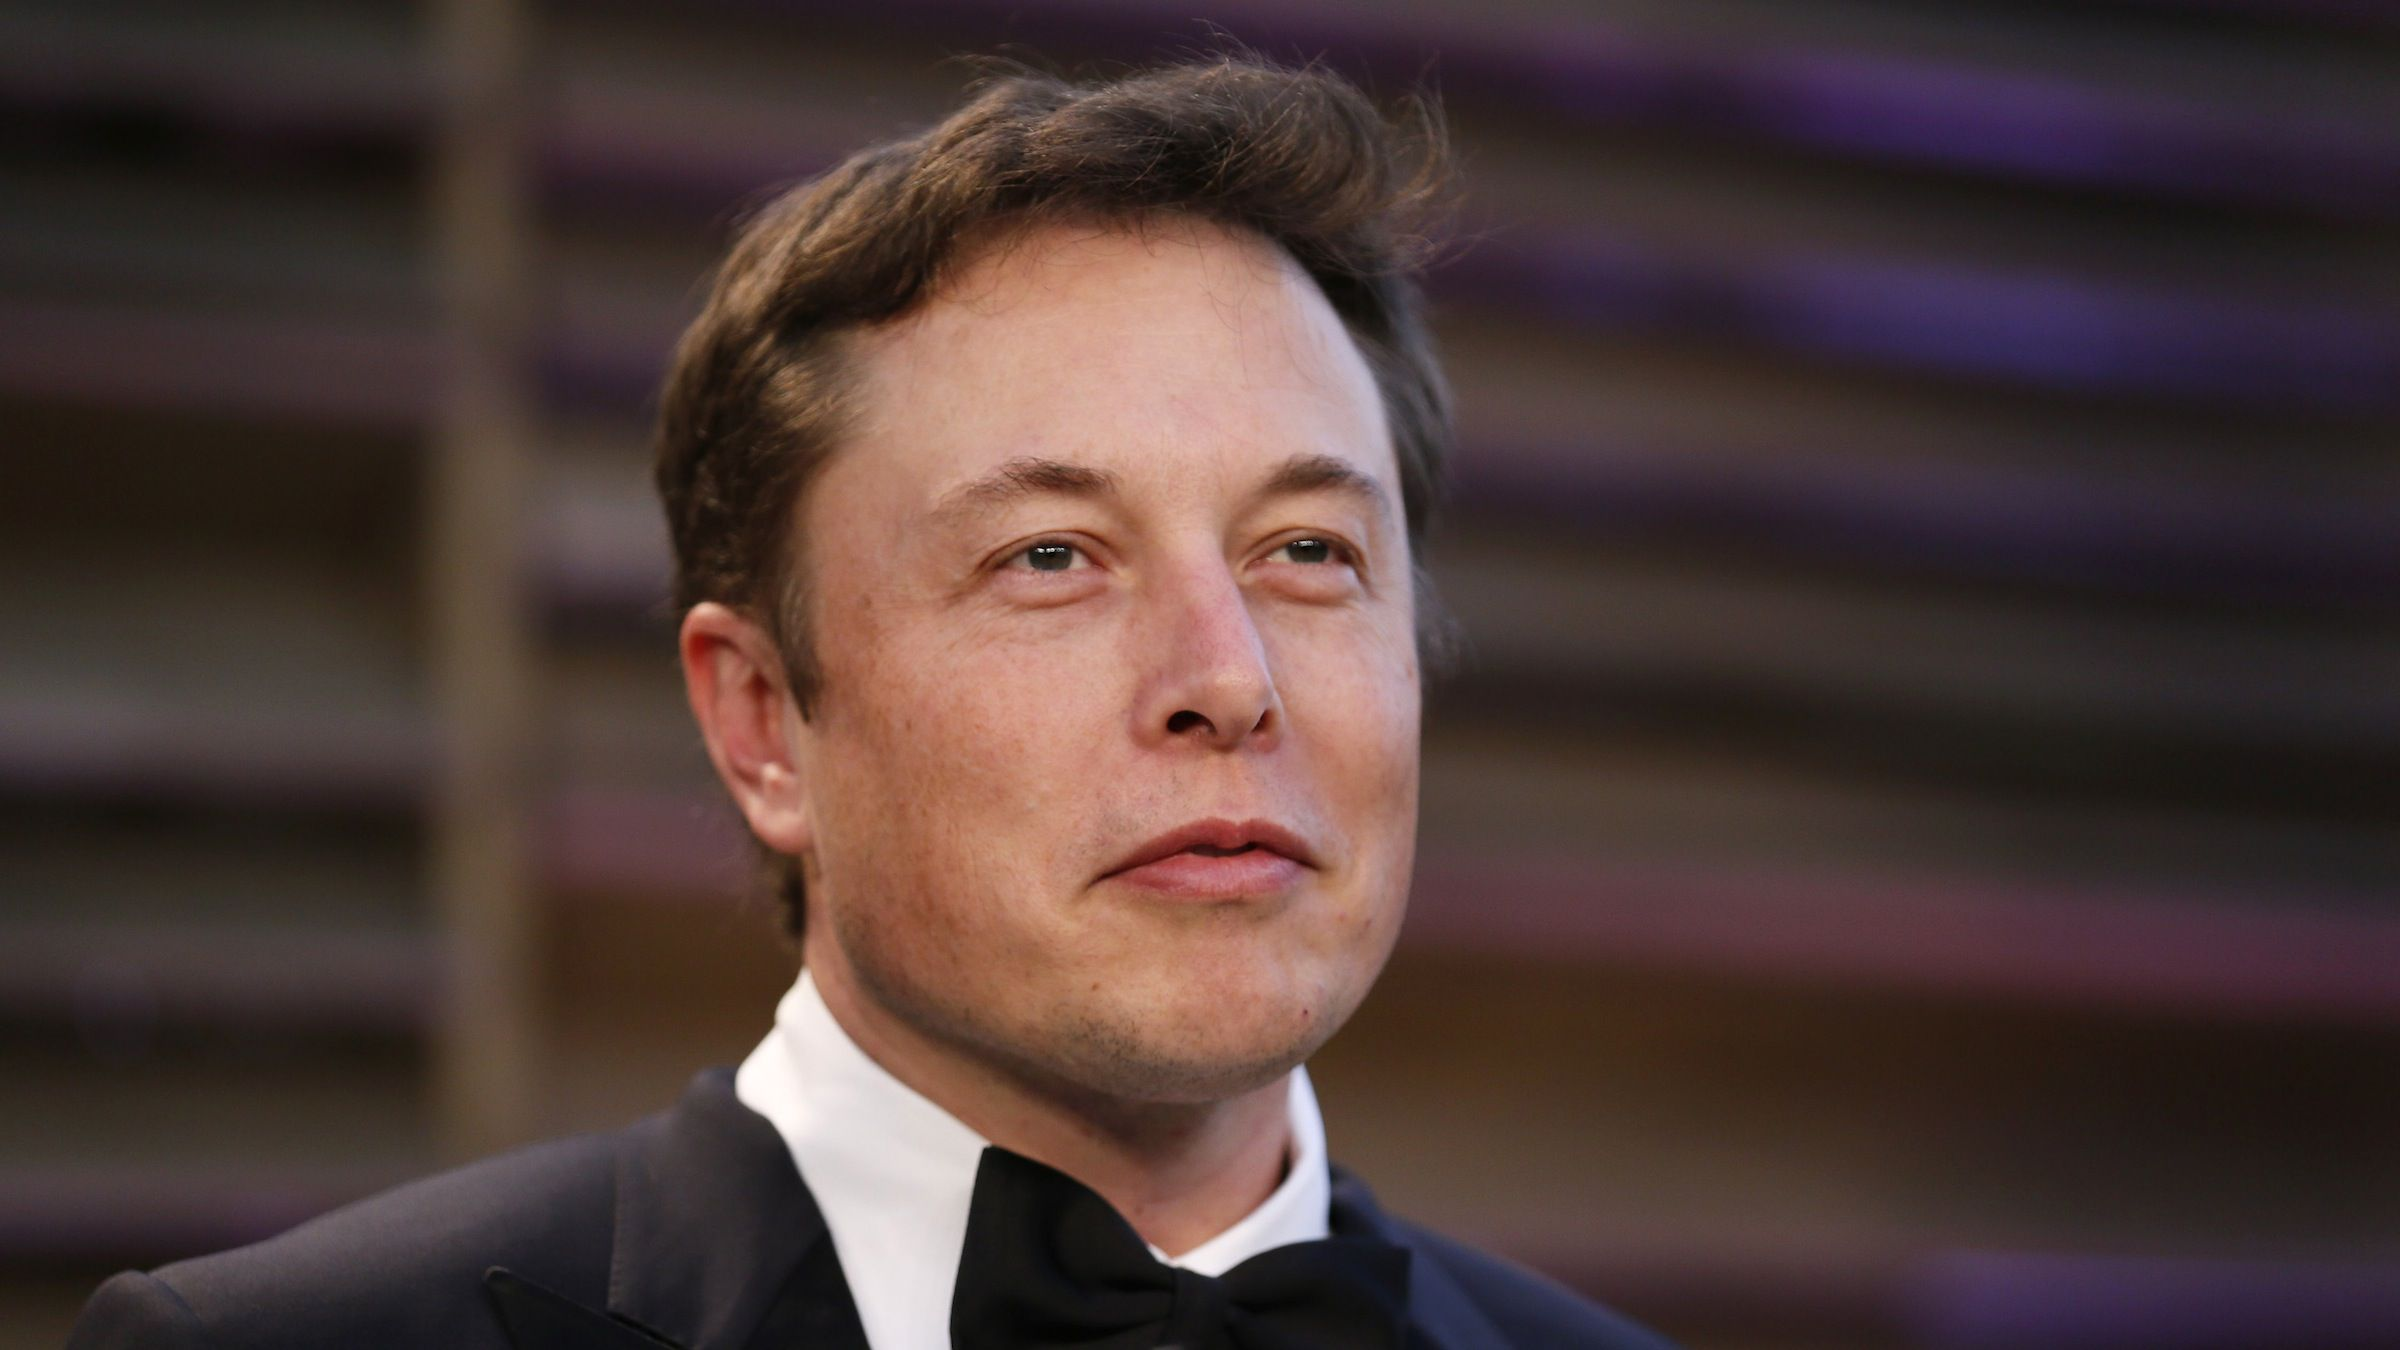 Chief Executive of SpaceX and Tesla Motors Elon Musk arrives at the 2014 Vanity Fair Oscars Party in West Hollywood, California March 2, 2014. REUTERS/Danny Moloshok (UNITED STATES  - Tags: ENTERTAINMENT BUSINESS)(OSCARS-PARTIES) - RTR3FY5P